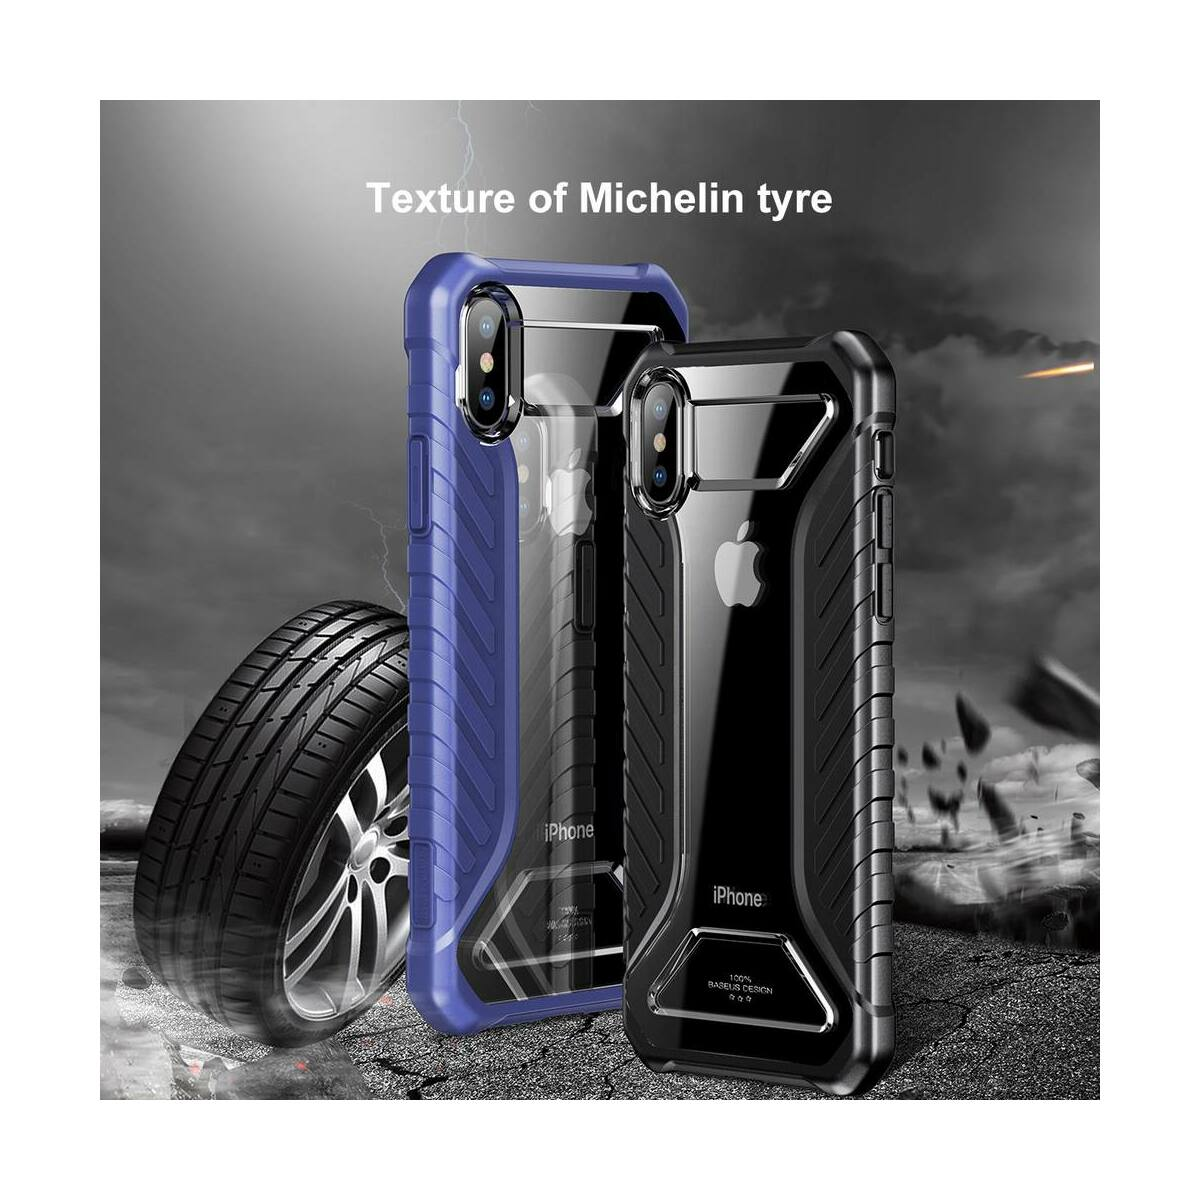 Baseus iPhone XS tok, Michelin, kék (WIAPIPH58-MK03)